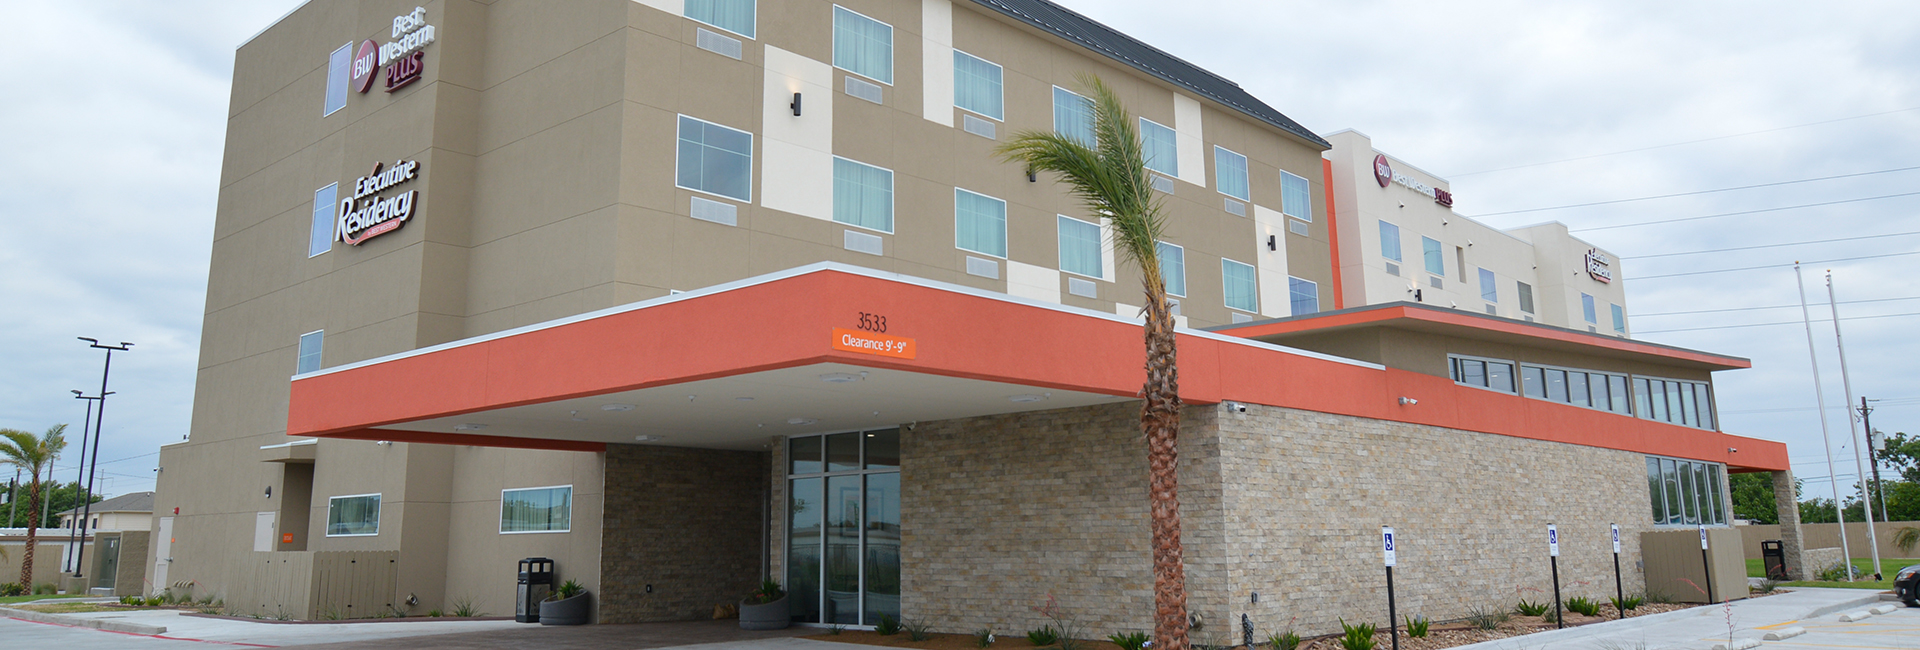 BEST WESTERN PLUS AND EXECUTIVE RESIDENCY CORPUS CHRISTI, TEXAS